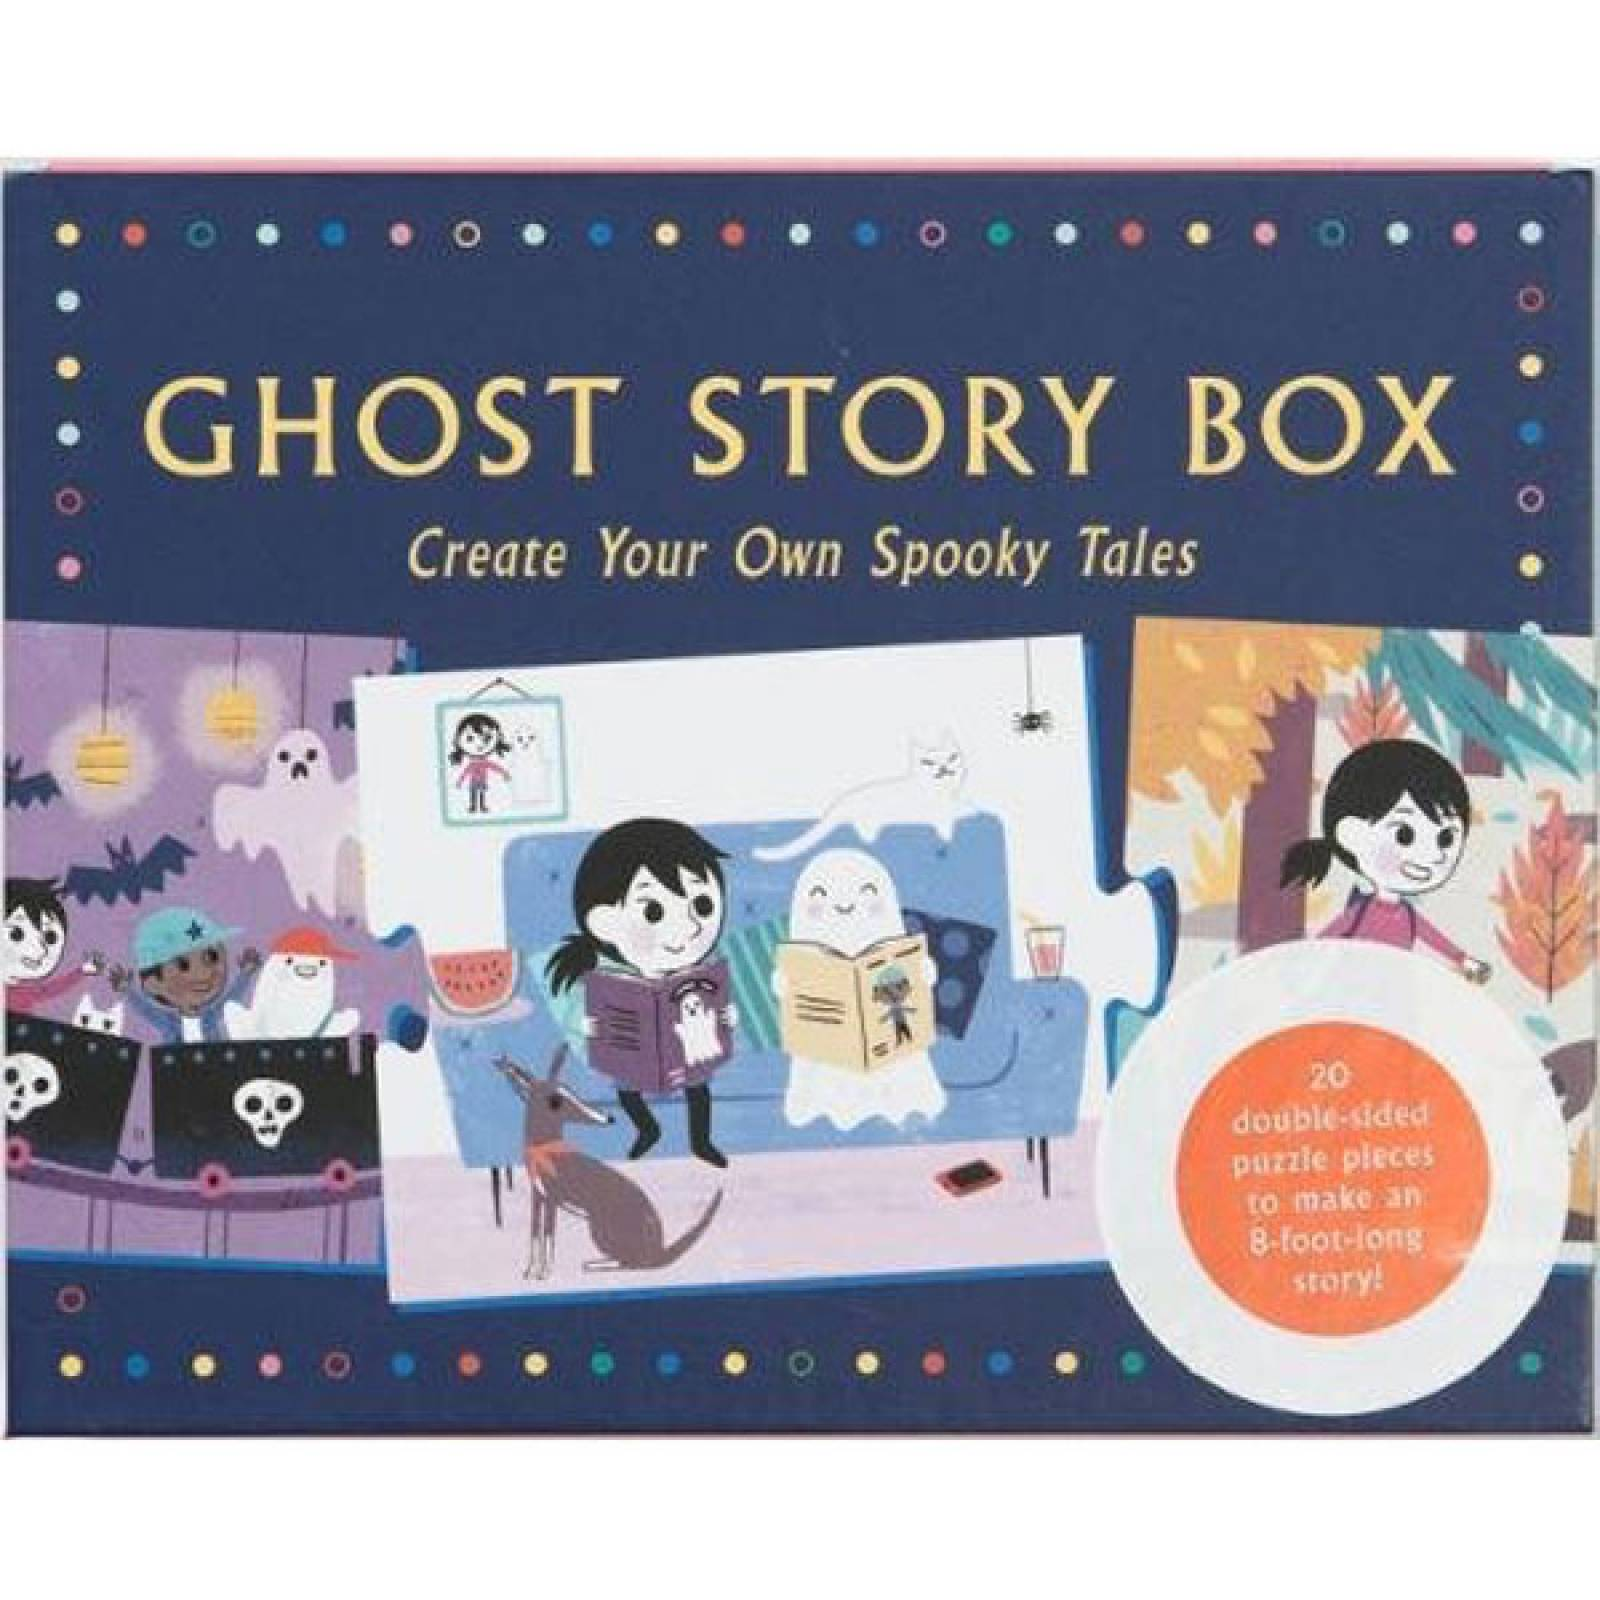 Ghost Story Box - Create Your Own Spooky Tales